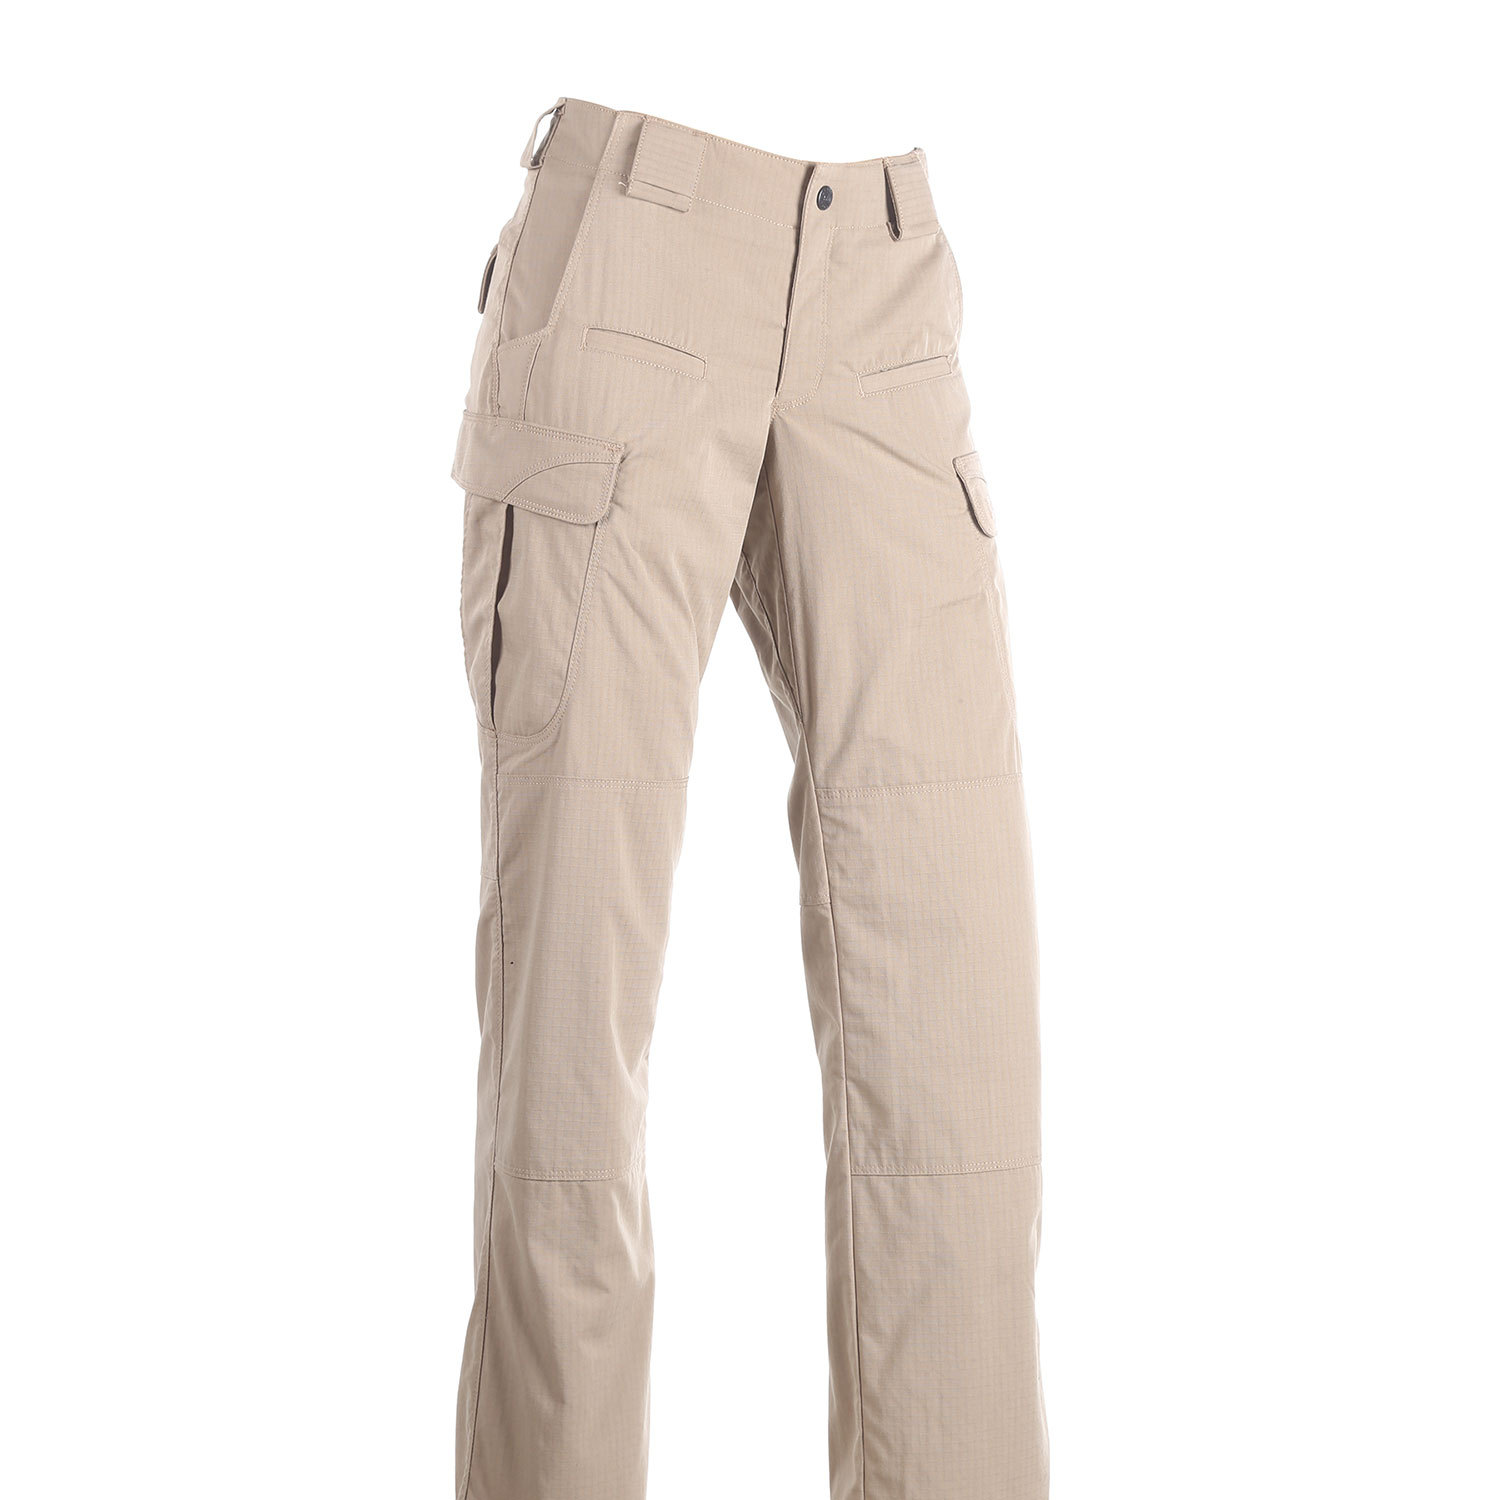 511 Stryke Tactical Trousers